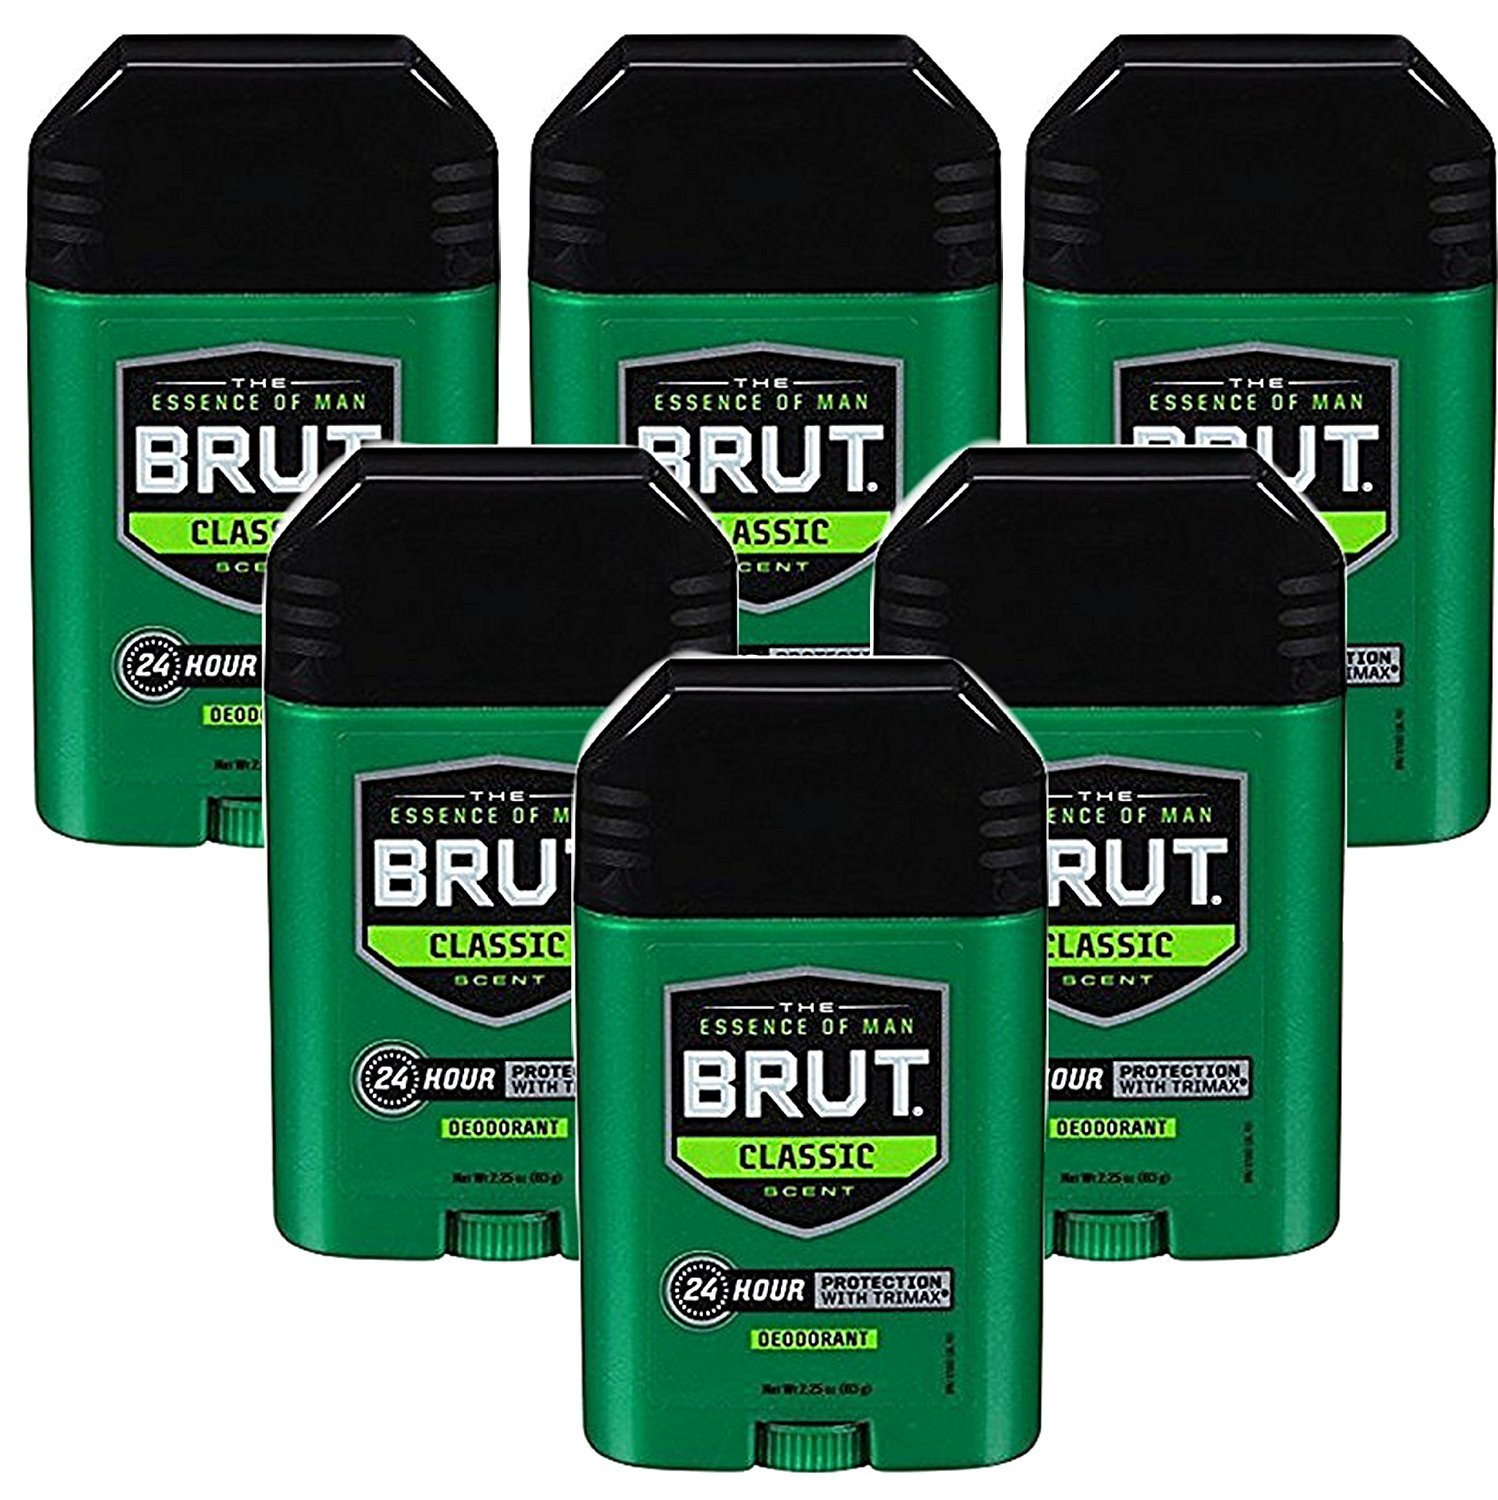 Brut Deodorant Original Fragrance 2.25 Oz/63 G (Pack of 6)